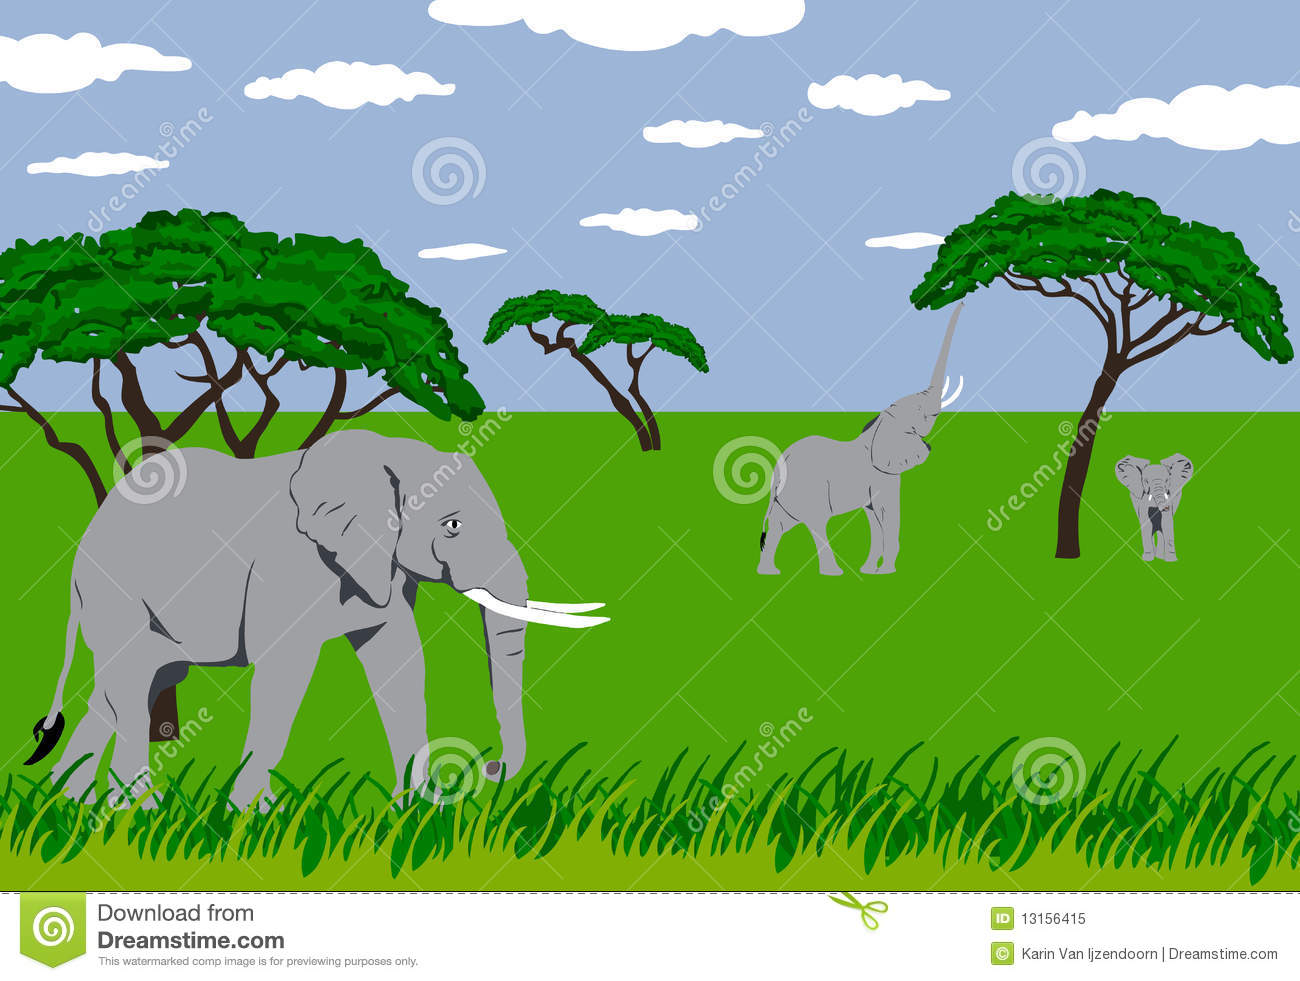 Grassland stock illustrations 6183 grassland stock elephants in grassland illustration of elephants standing and eating in grassland in an african scenery voltagebd Choice Image